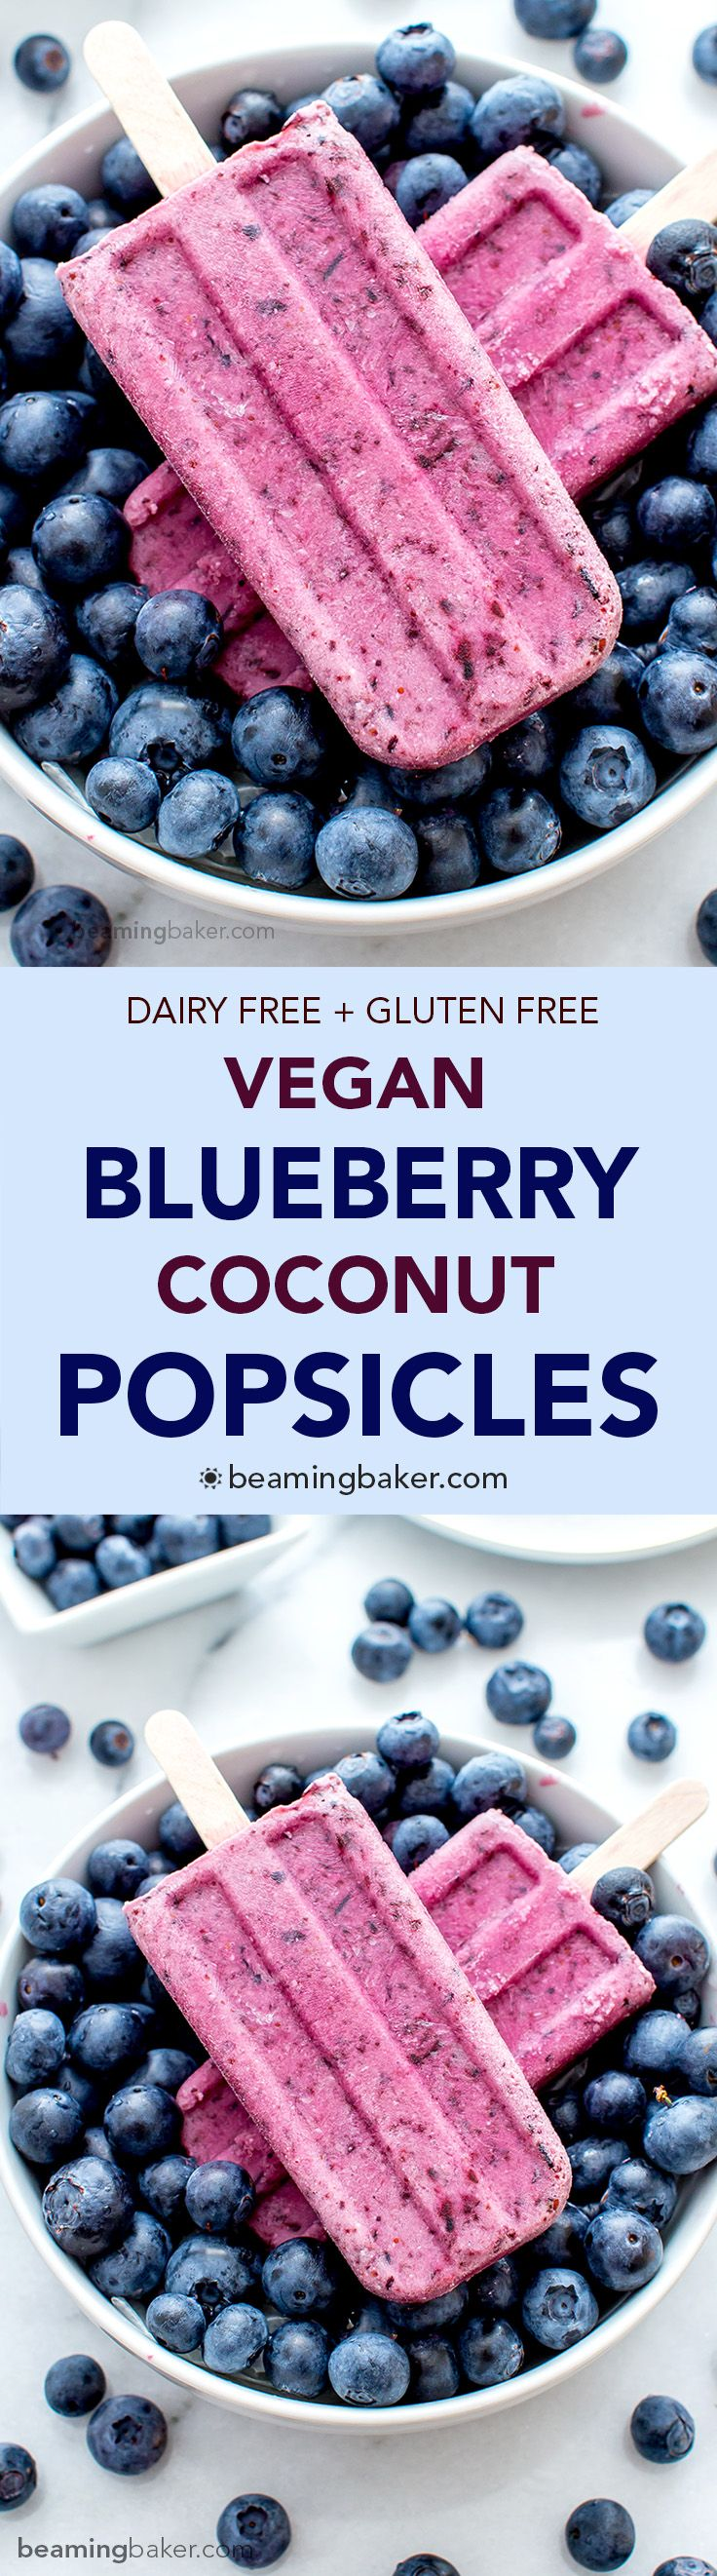 Vegan Blueberry Coconut Popsicles (V+GF): a 3 ingredient recipe for creamy popsicles packed with blueberries and coconut flavor. #Vegan #GlutenFree #DairyFree   BeamingBaker.com